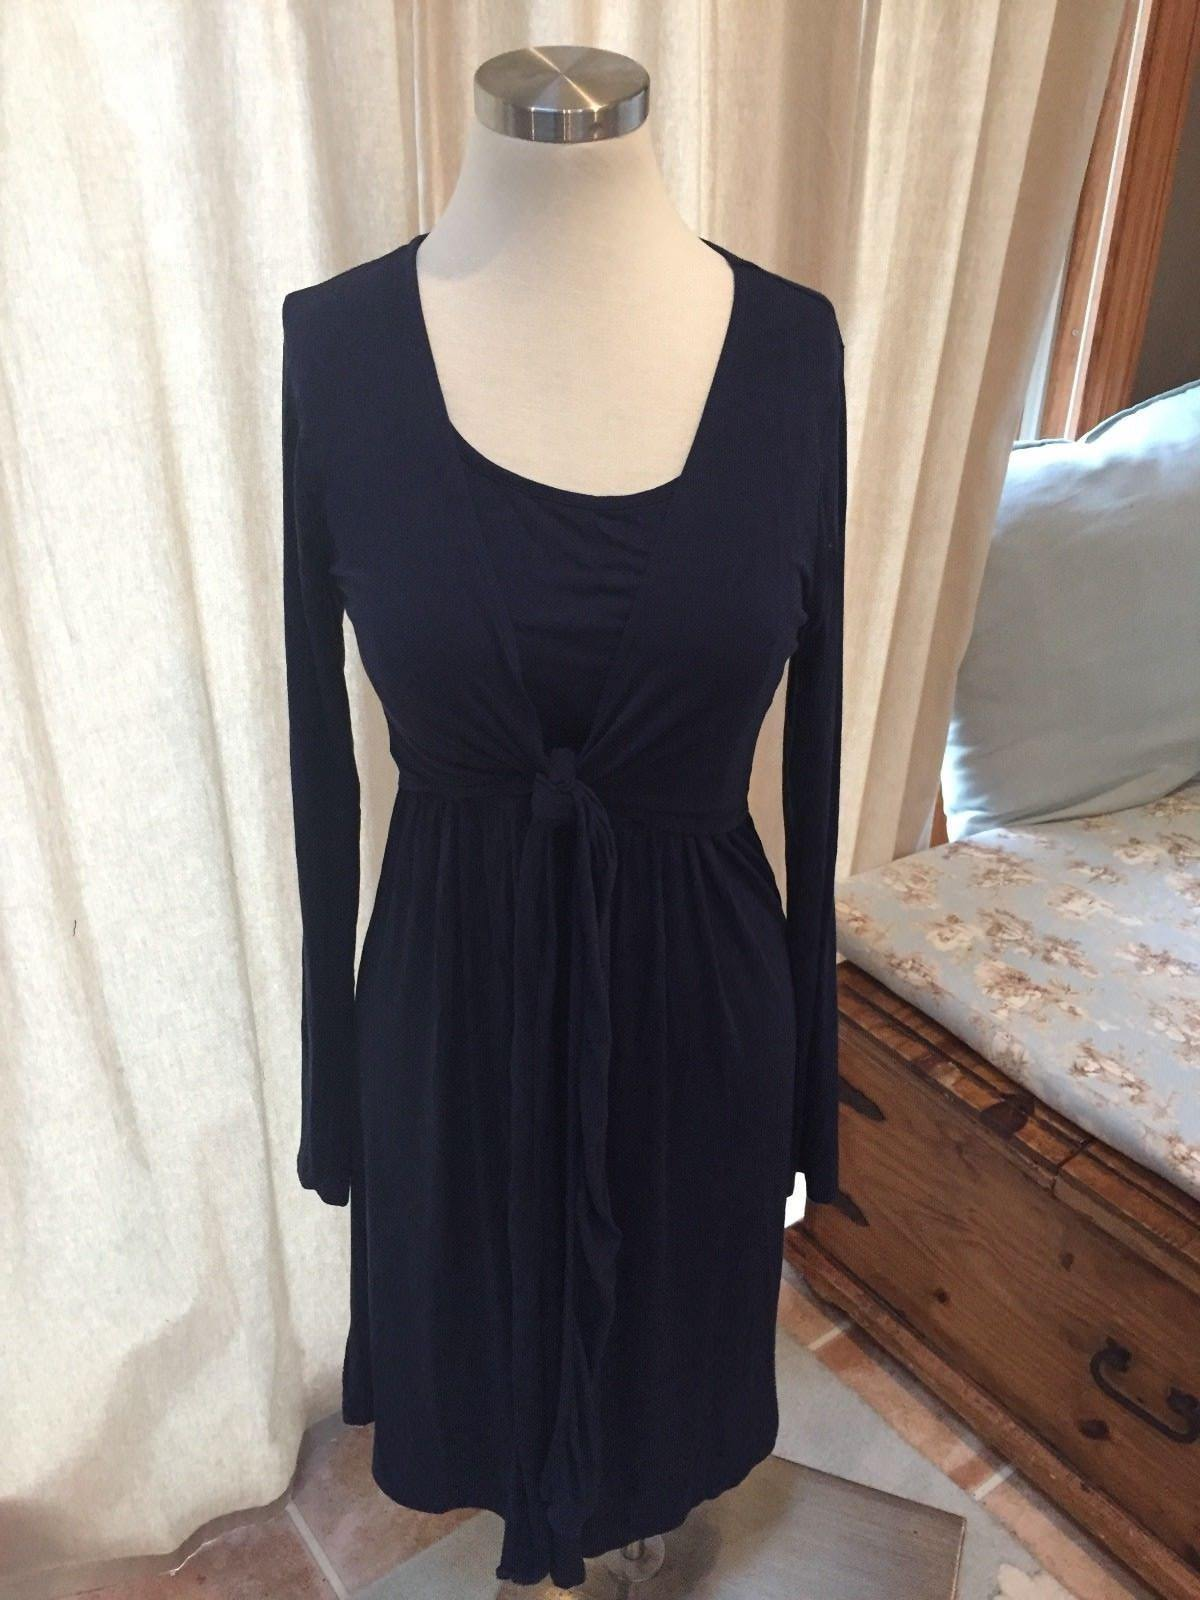 NEW JoJo Maman Bebe Navy bluee Maternity Nursing Dress Stretch M